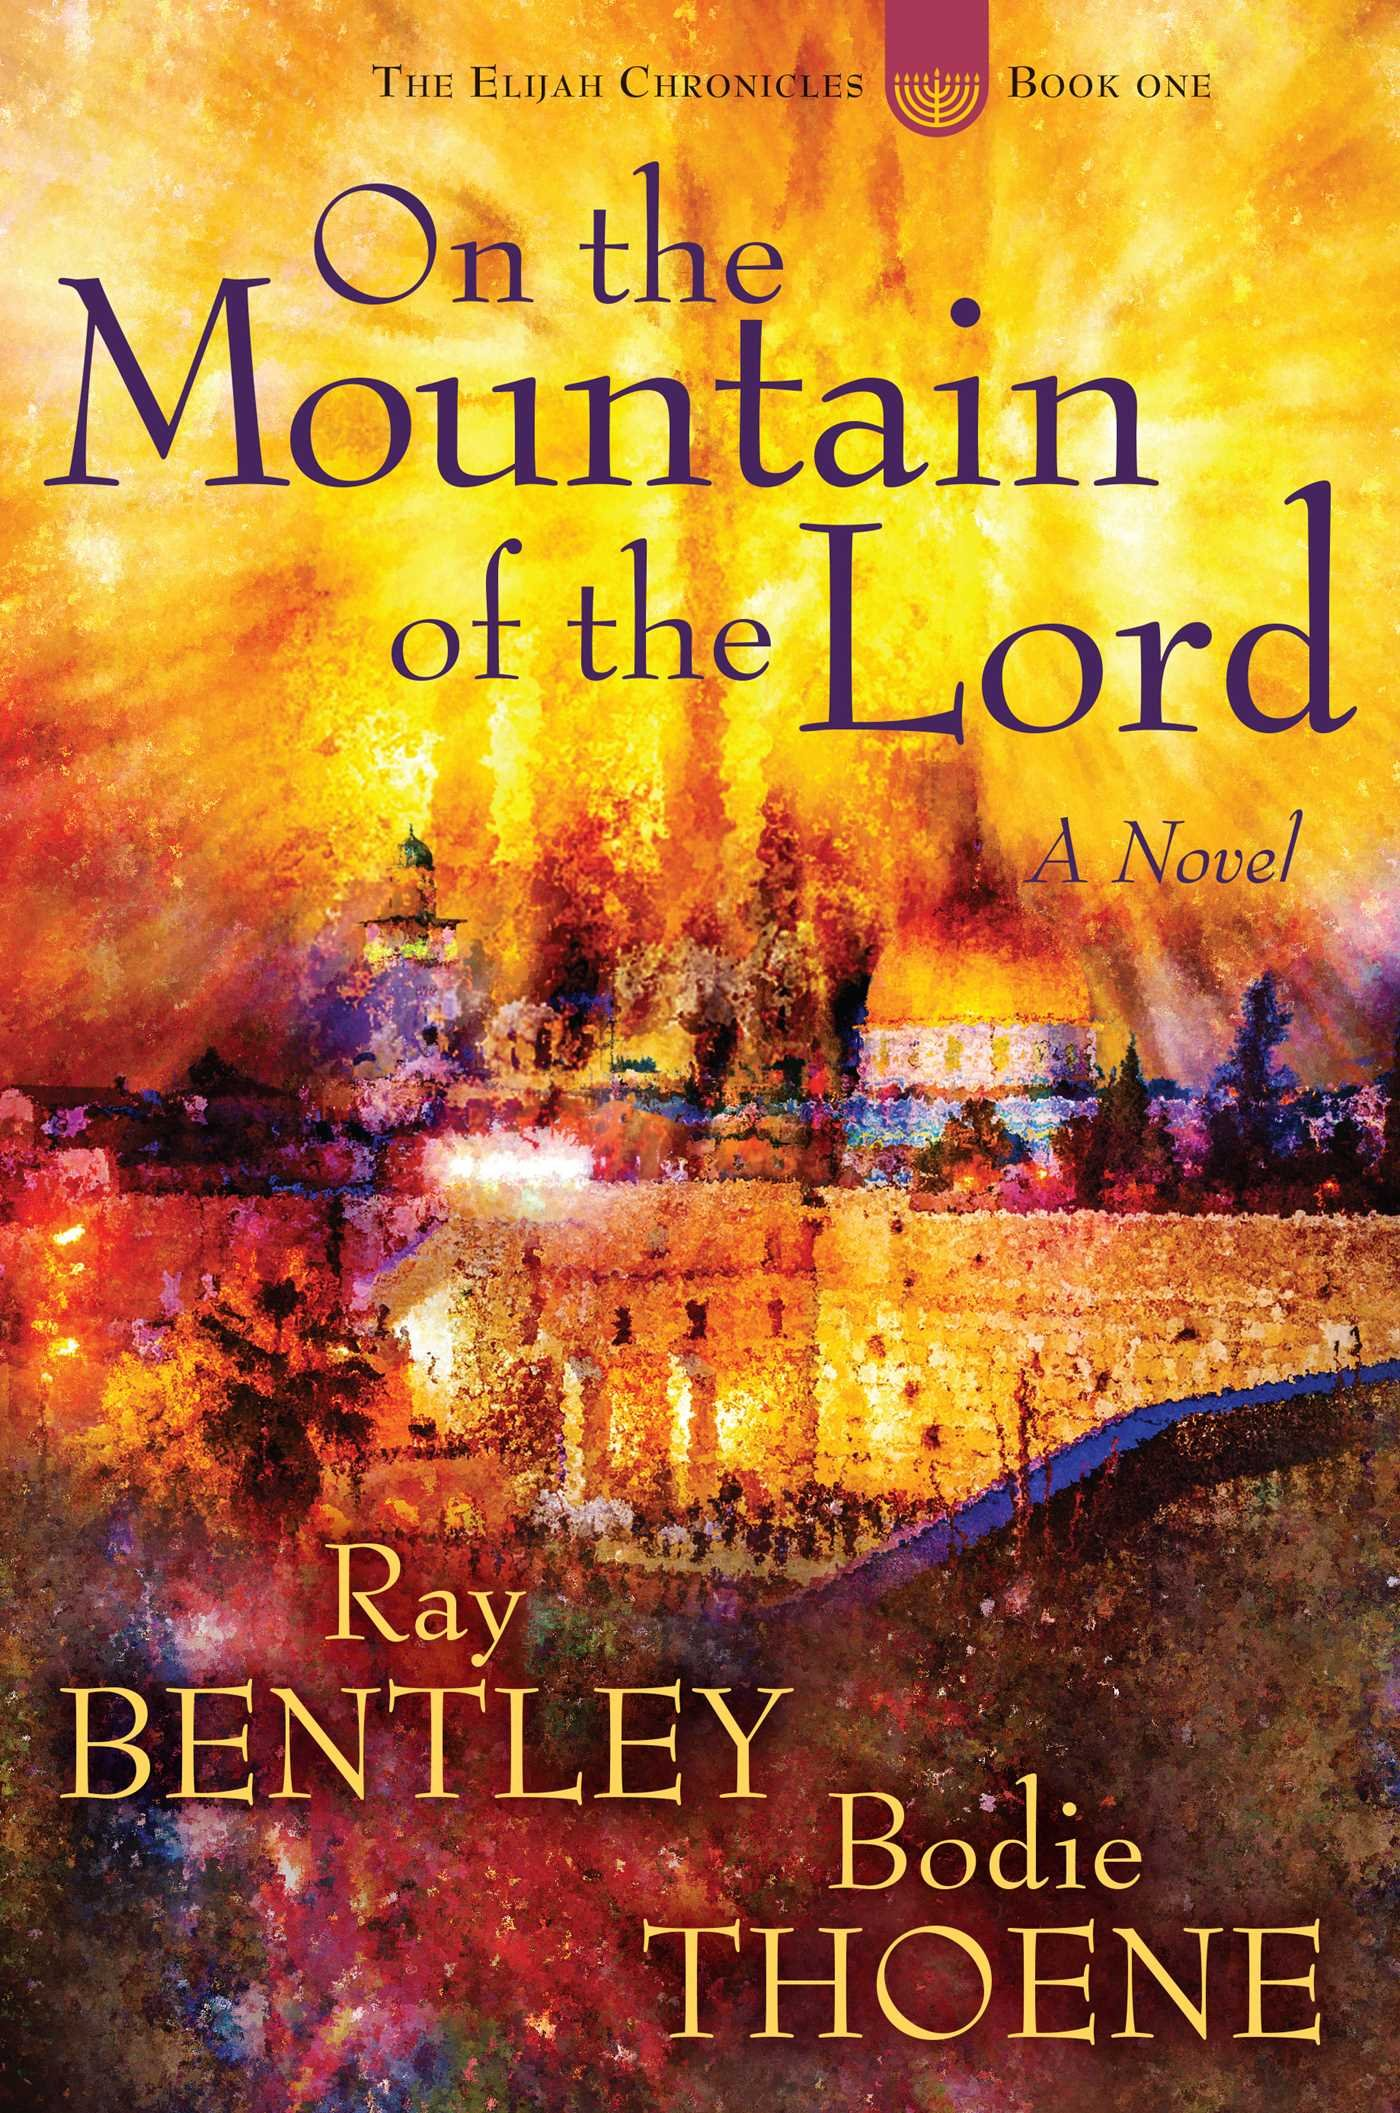 ade135b063df On the Mountain of the Lord (Elijah Chronicles): Ray Bentley, Bodie ...